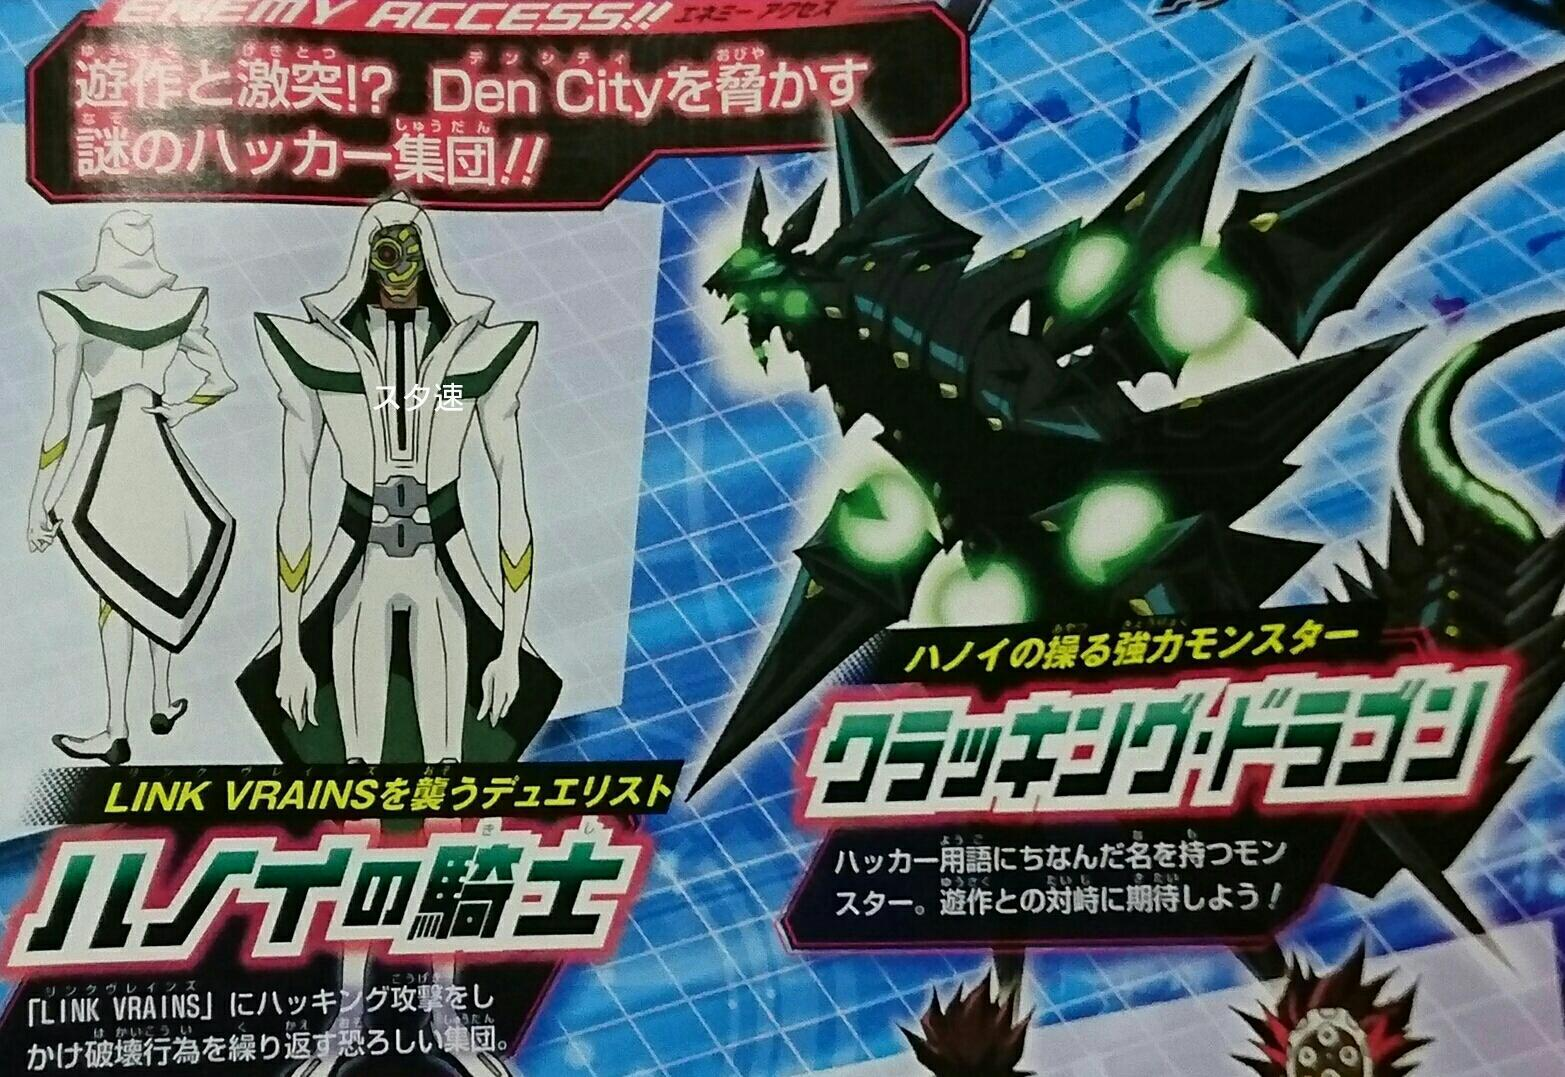 [VRAINS] More characters and plot for episode 1 revealed - Beyond the Duel